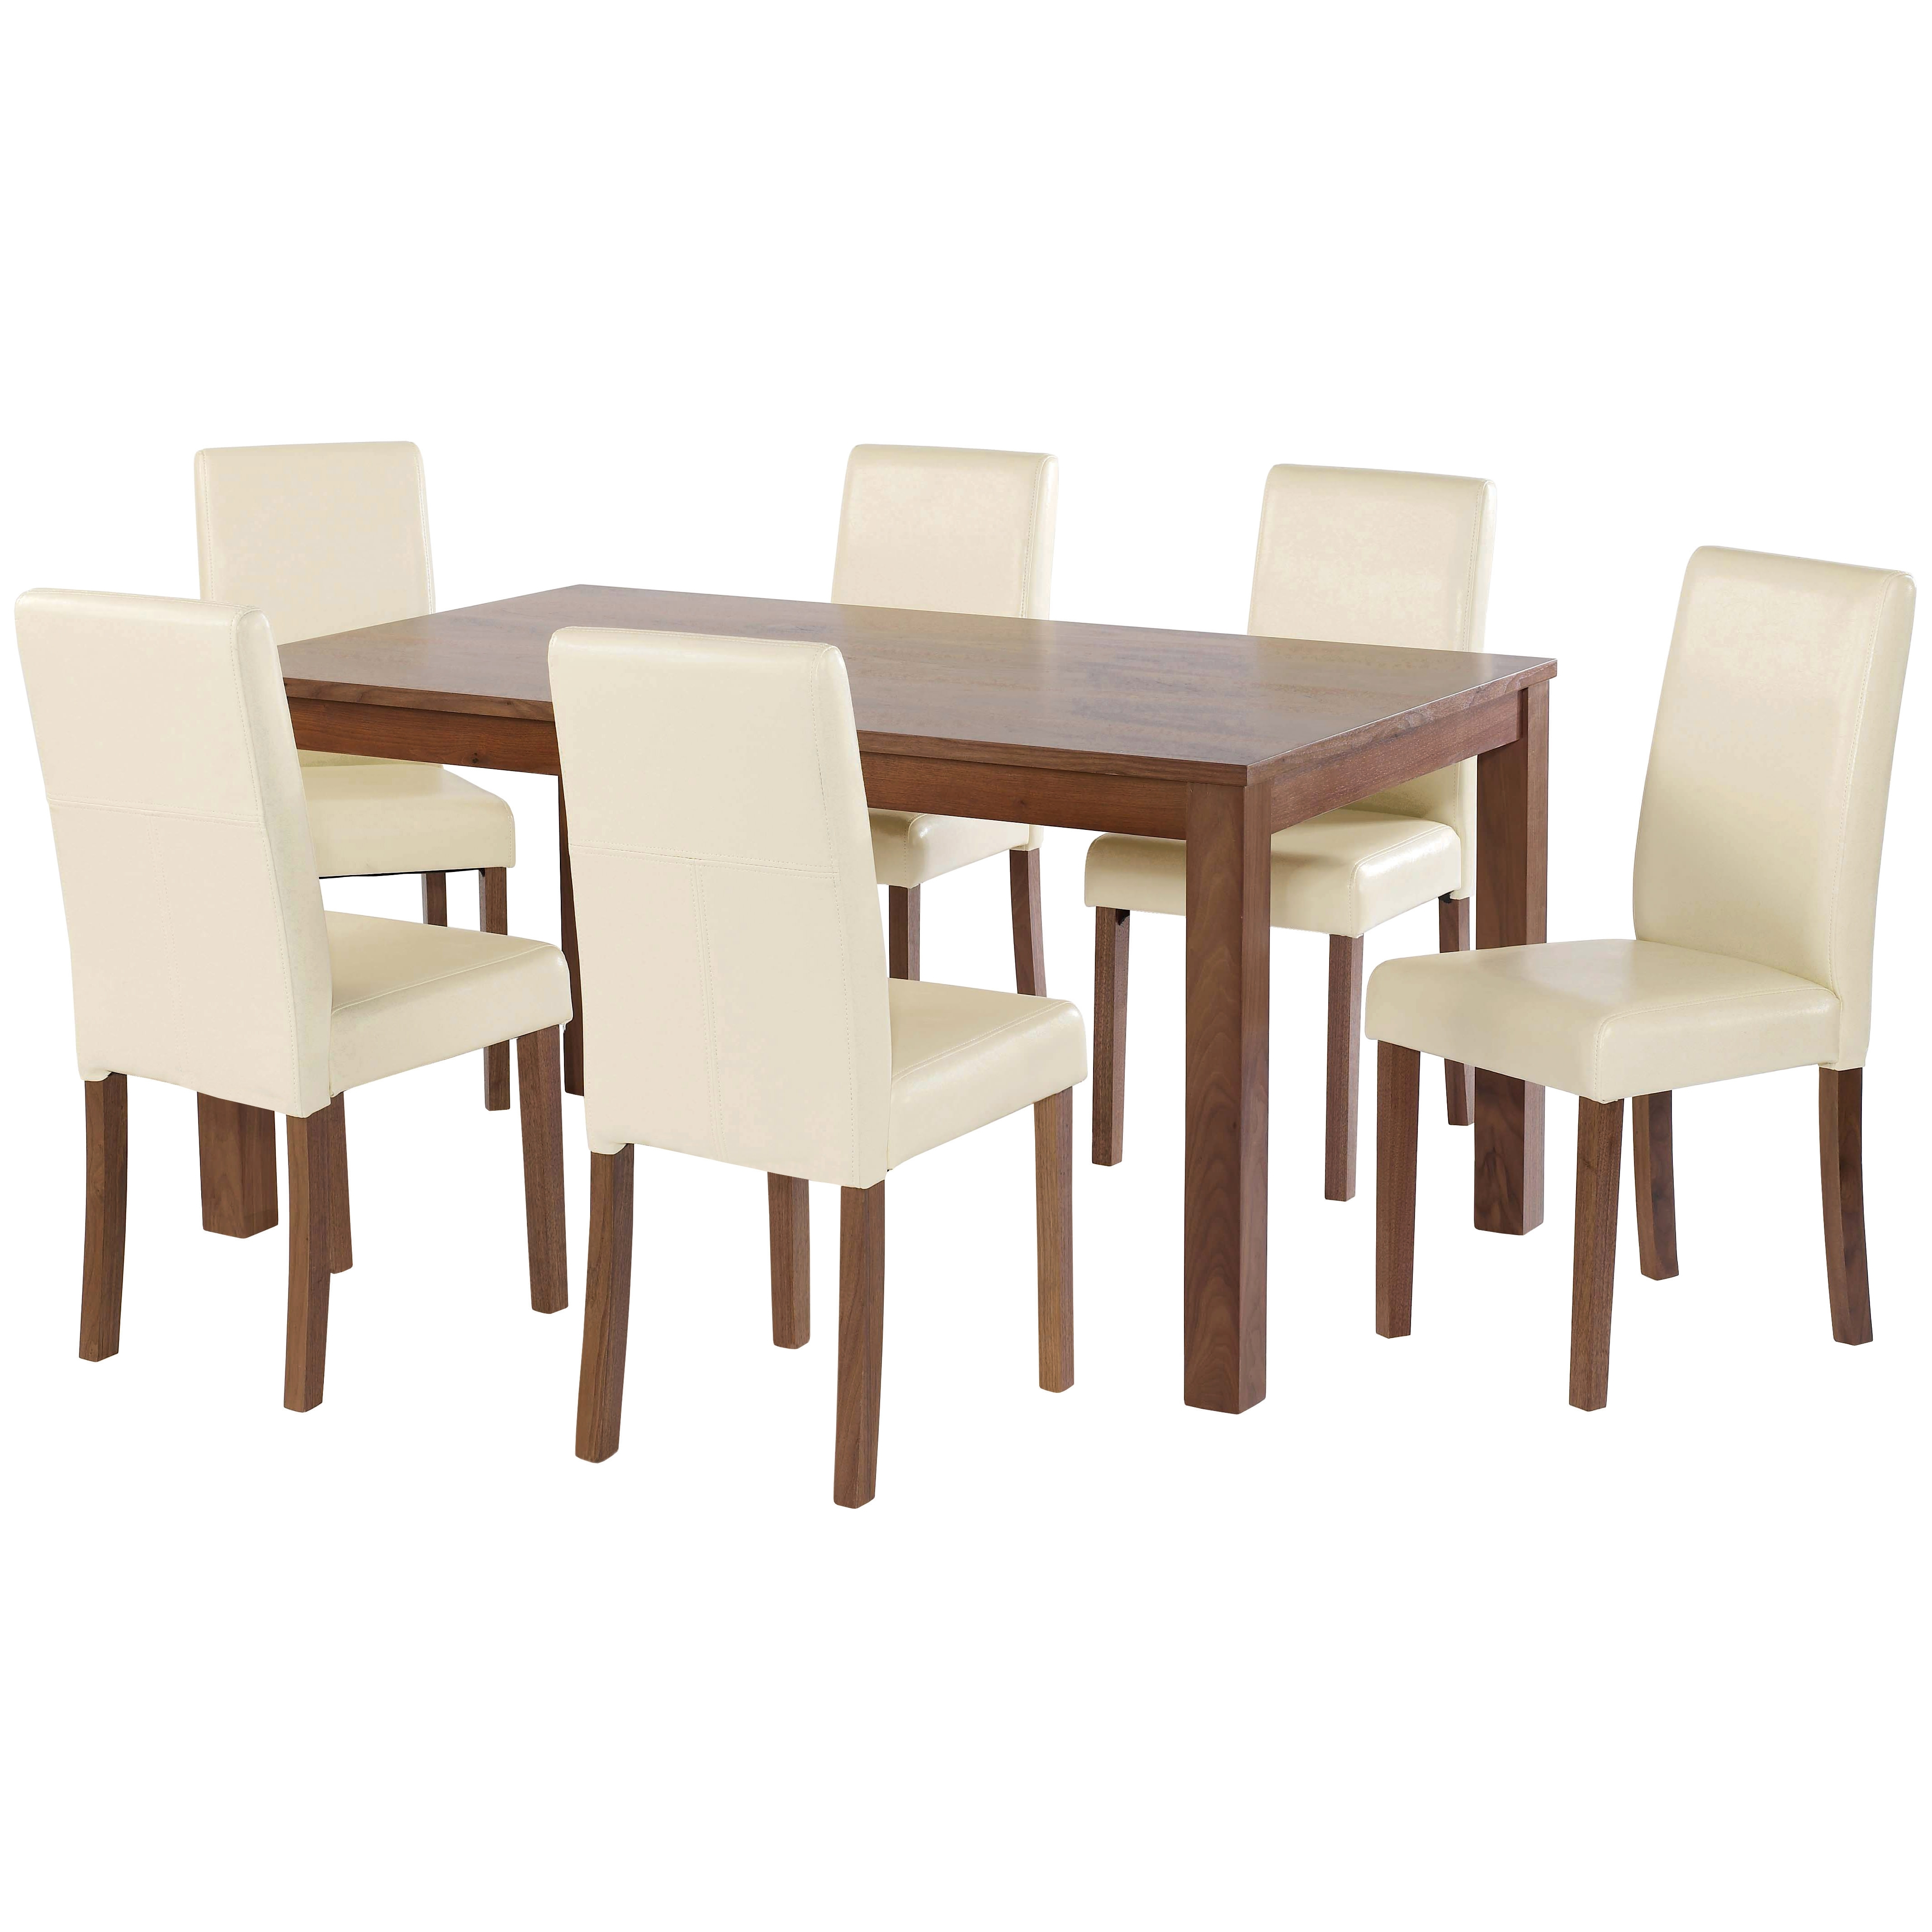 American Walnut Dining Table And Chair Set With 4/6 Seat (View 5 of 25)